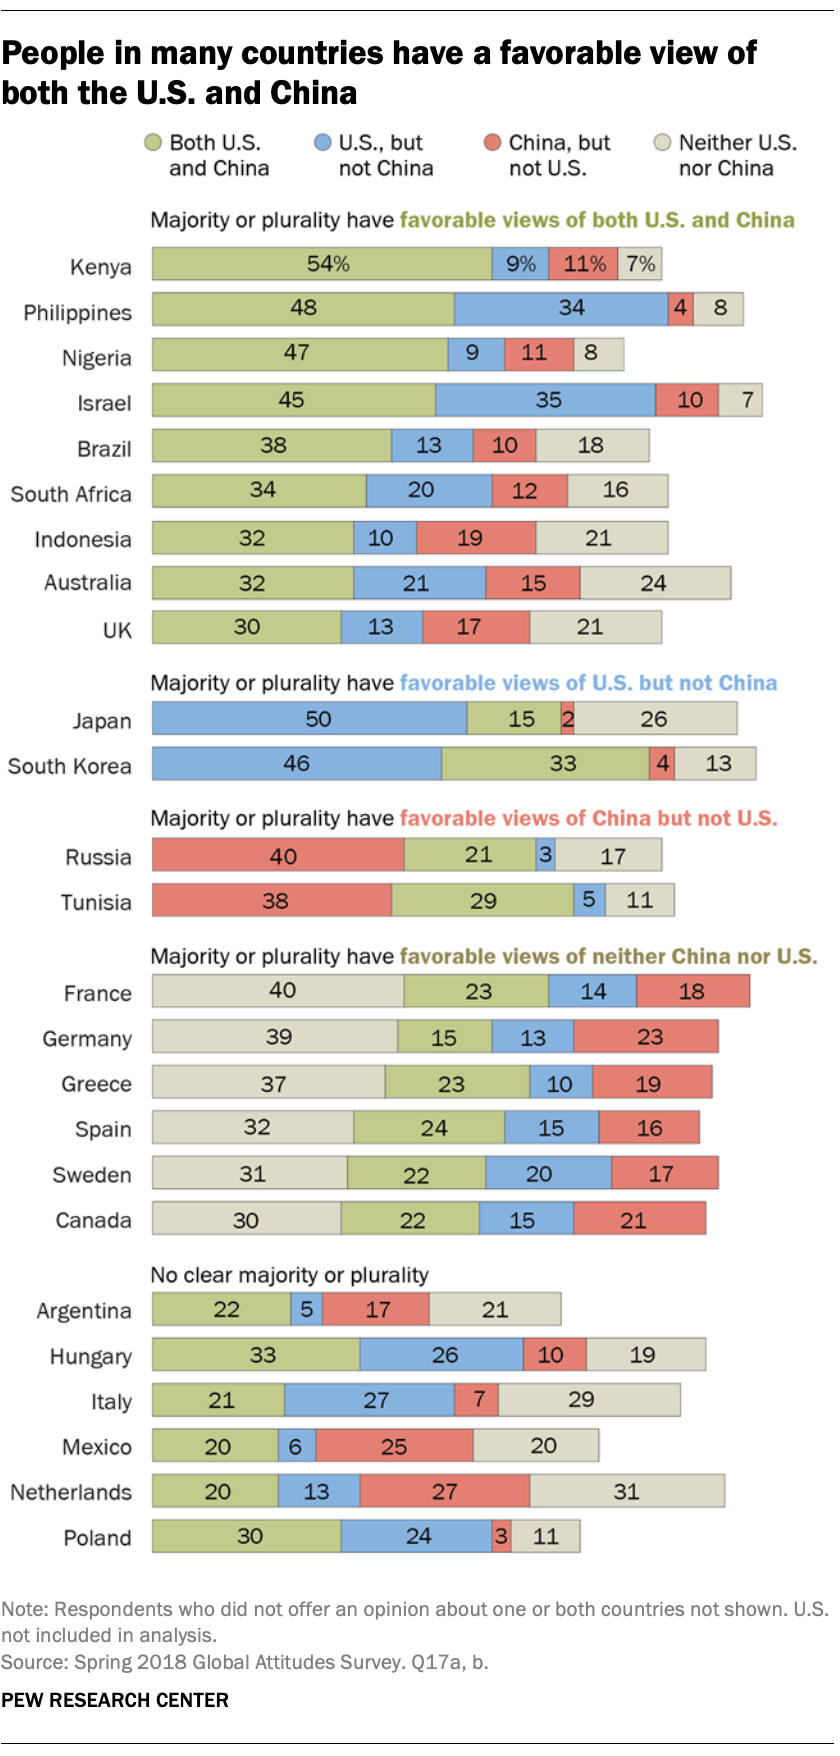 People in many countries have a favorable view of both the U.S. and China